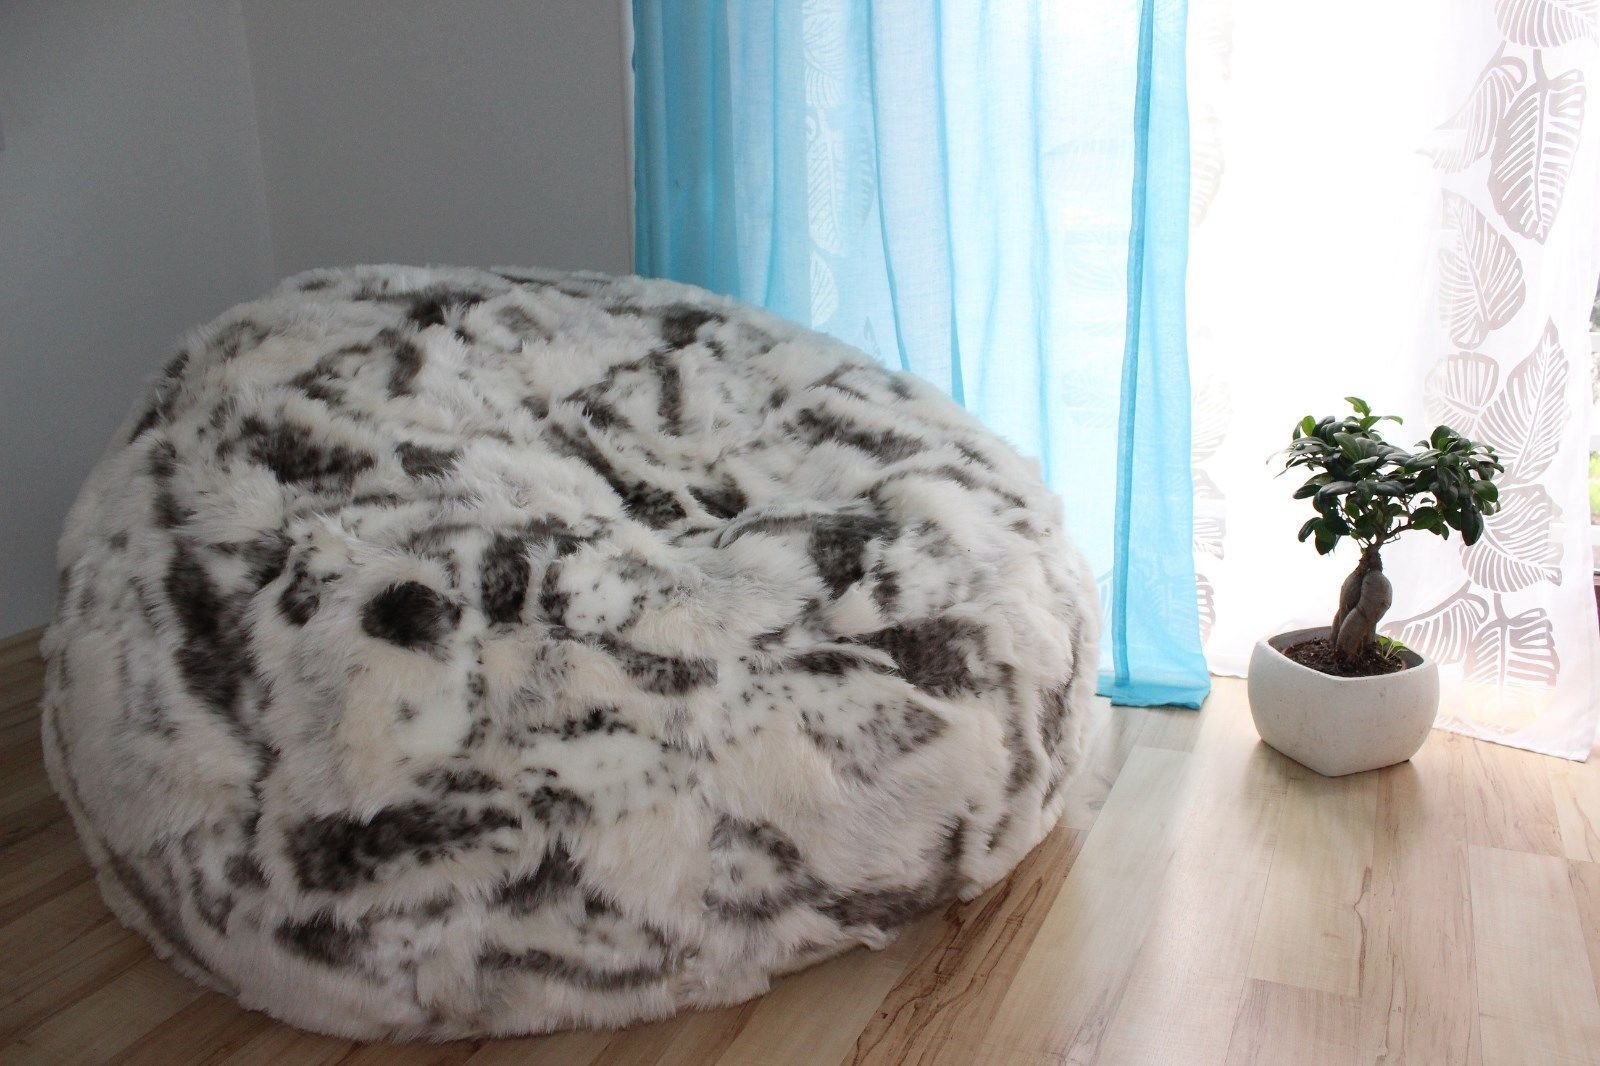 How to make bean bag chairs - How To Make A Bean Bag Cover